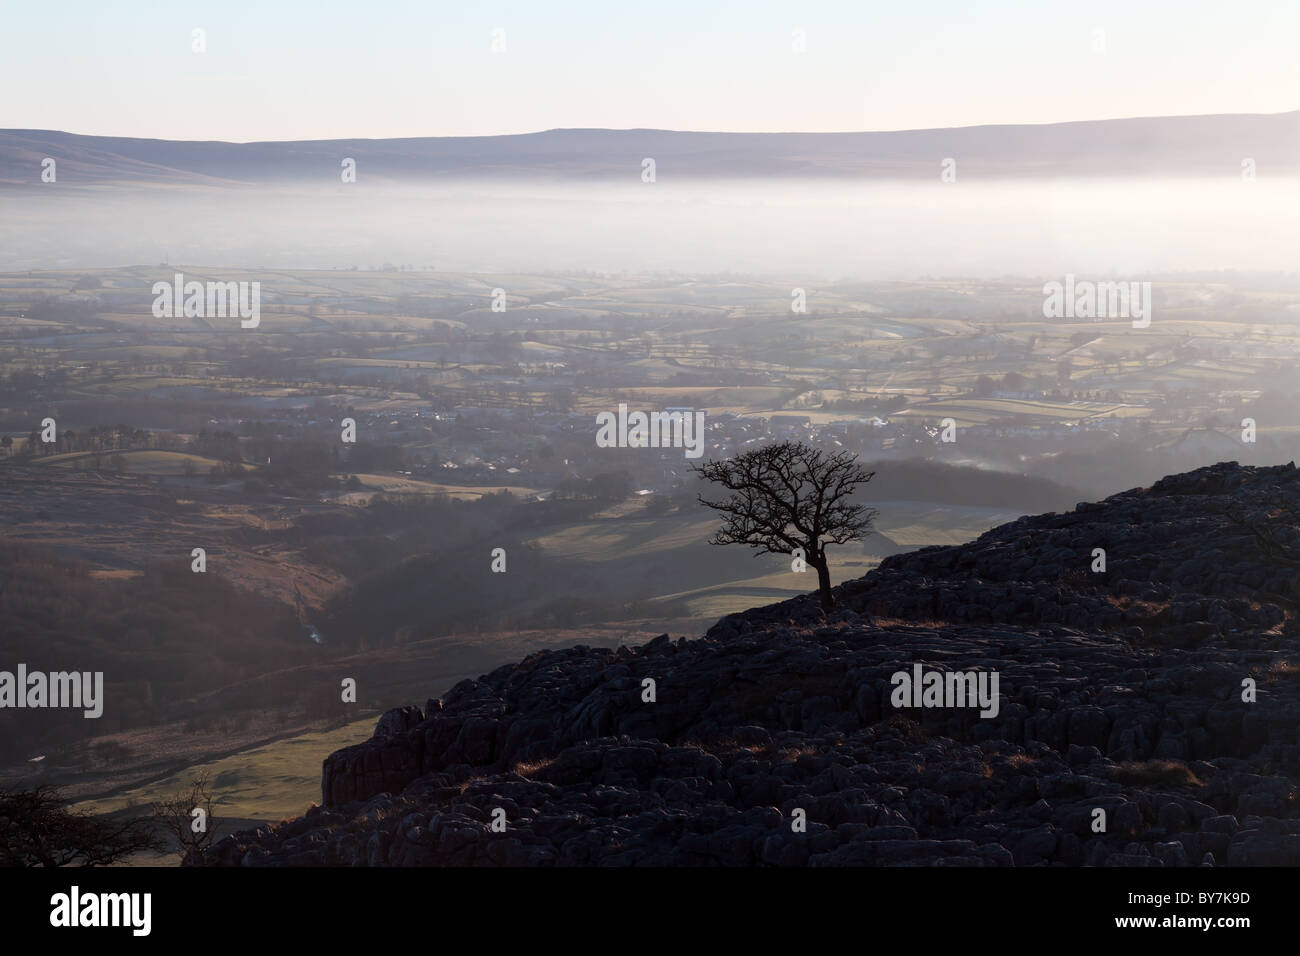 Isolated Tree and Mist Above the Village of Ingleton Viewed from Twistleton Scar Yorkshire Dales UK - Stock Image